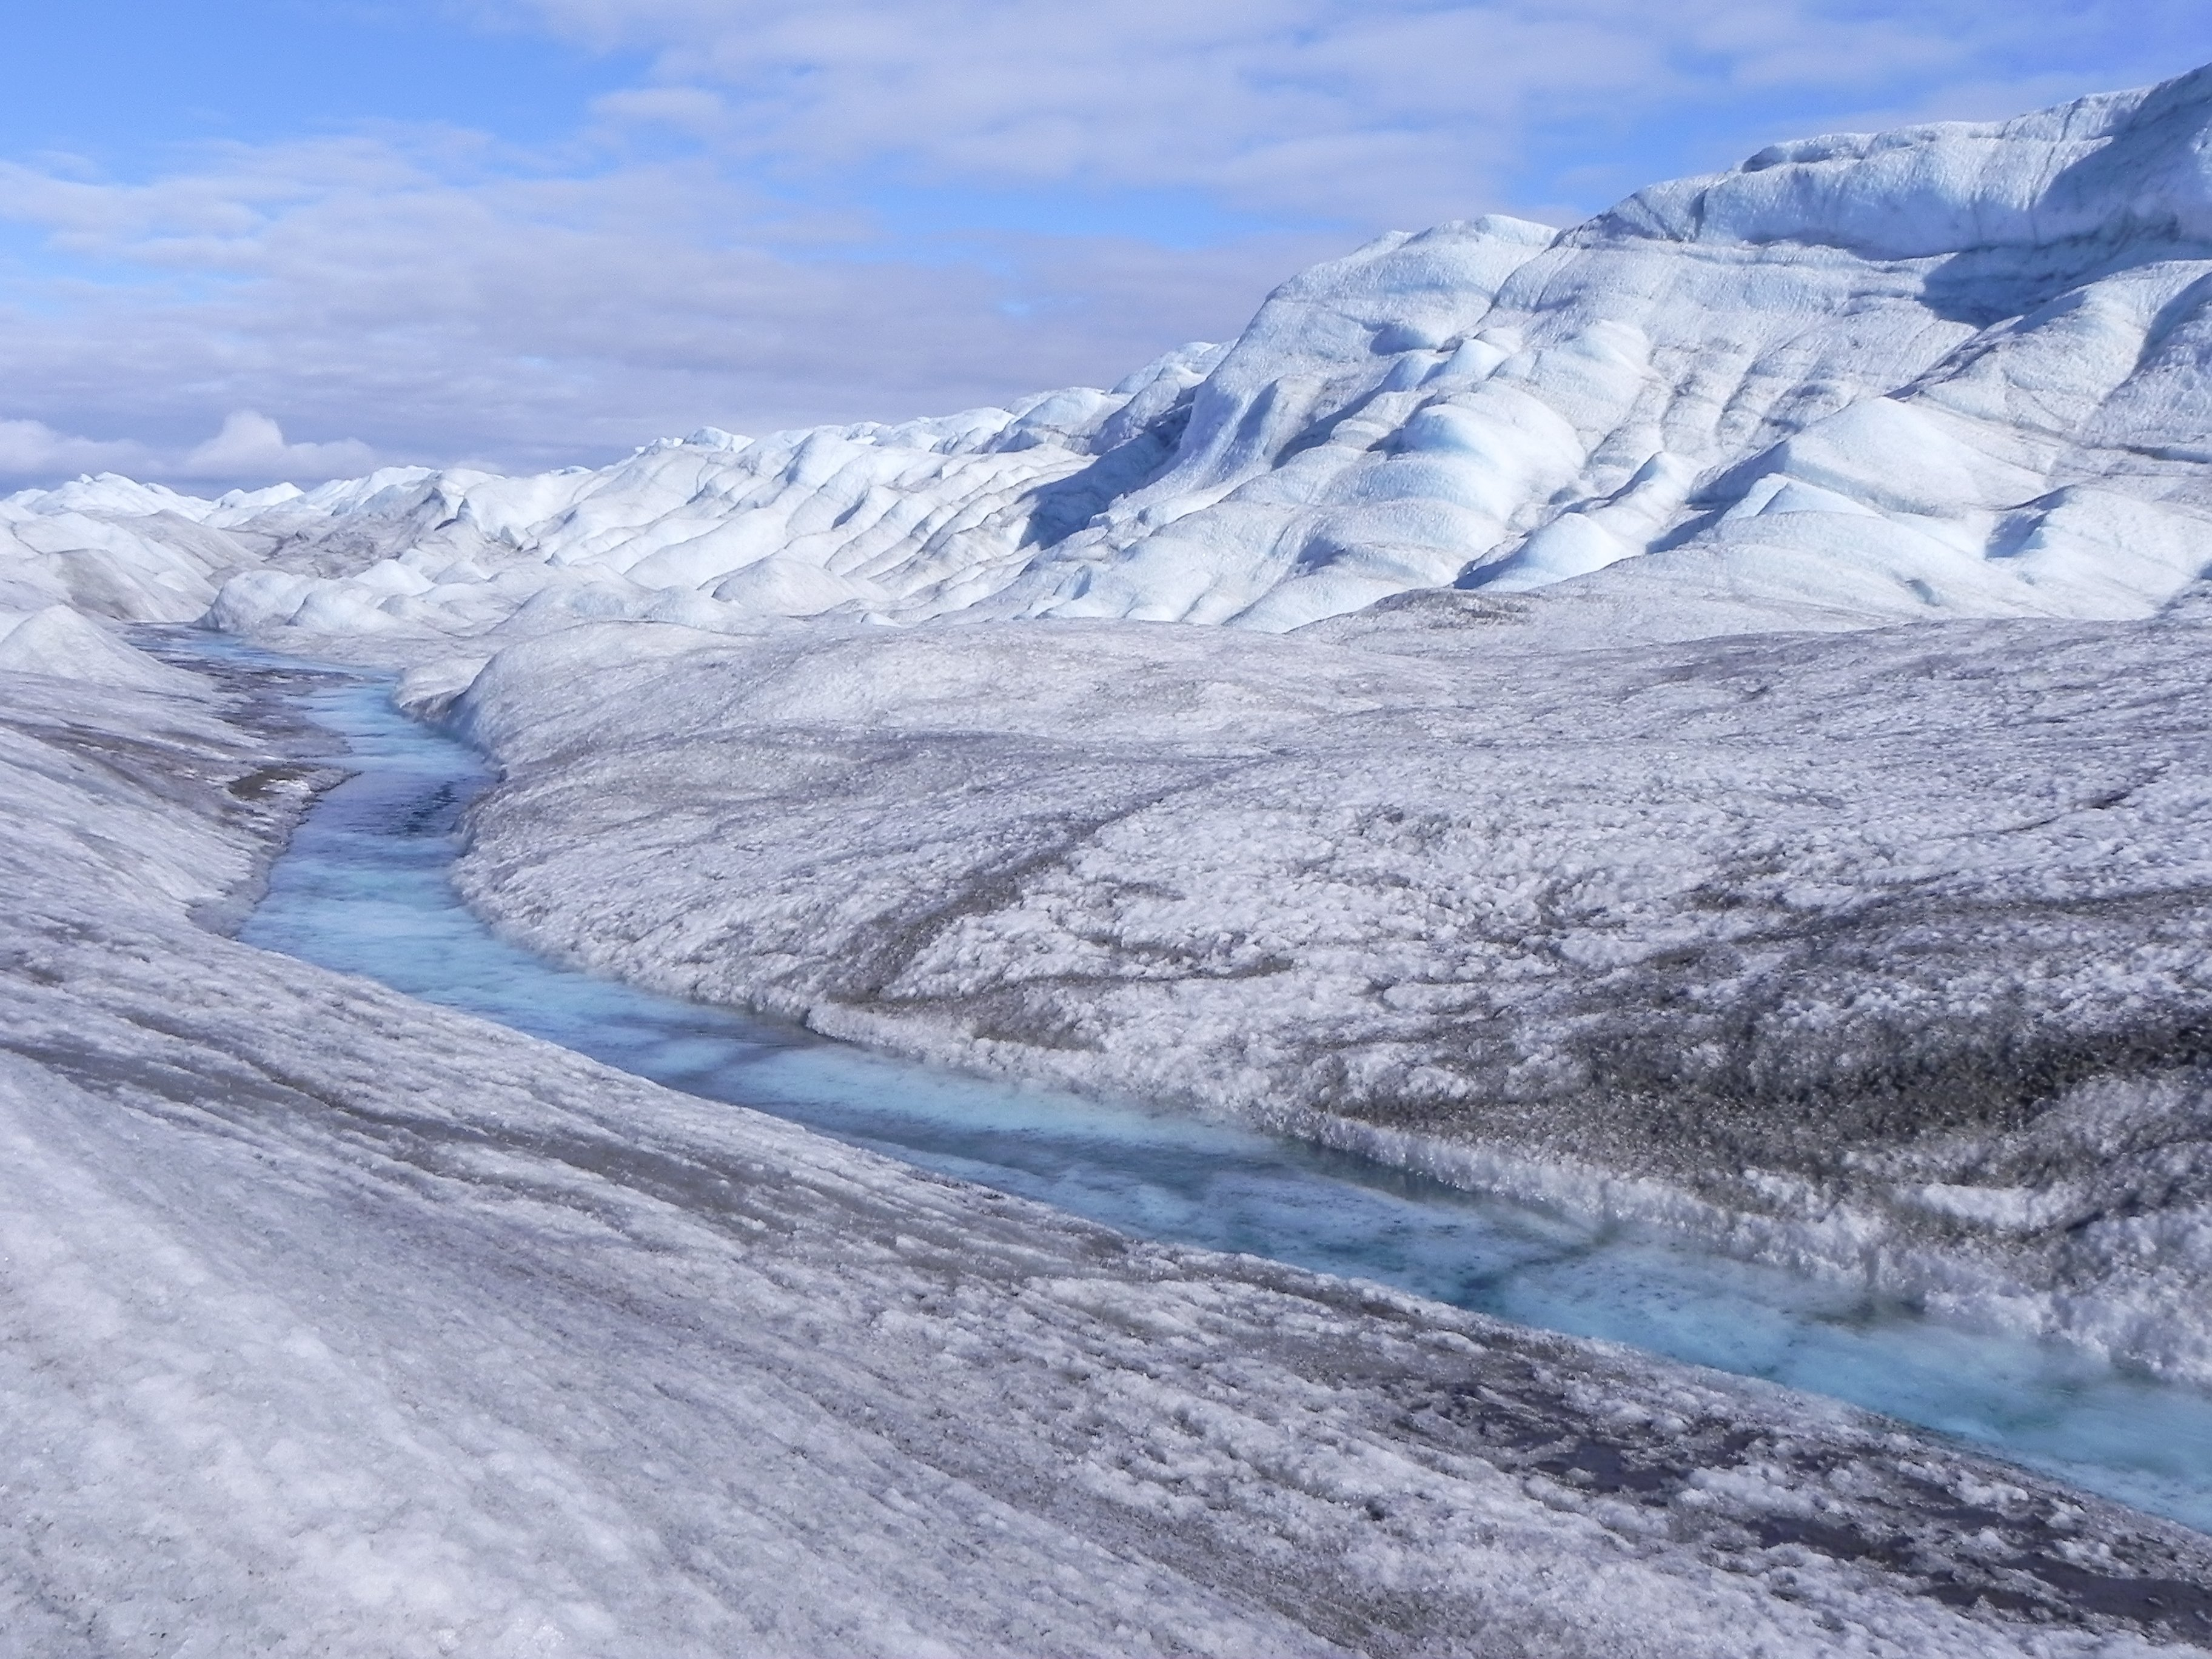 Industrial pollution might be a lot more widespread in Greenland's ice sheet than we thought